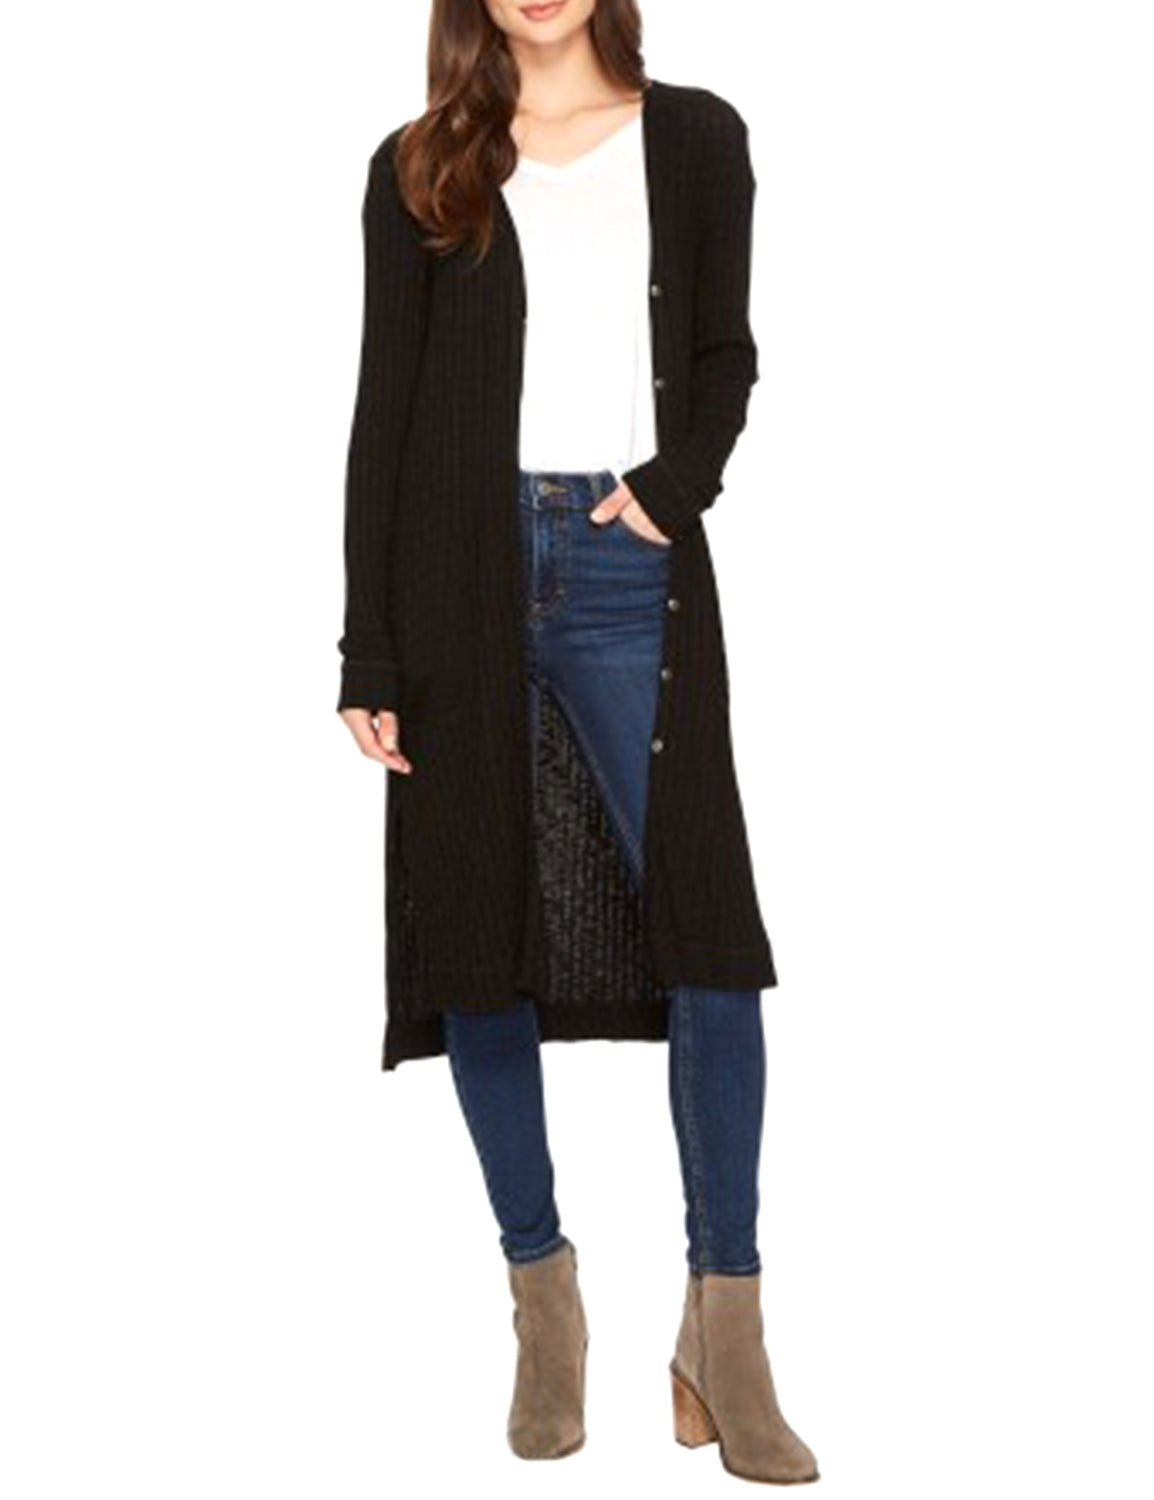 Blooming Jelly_Cool Girl Button Cardigan_Black_296090_02_Casual Outdoor Button Up Long_Tops_Cardigan